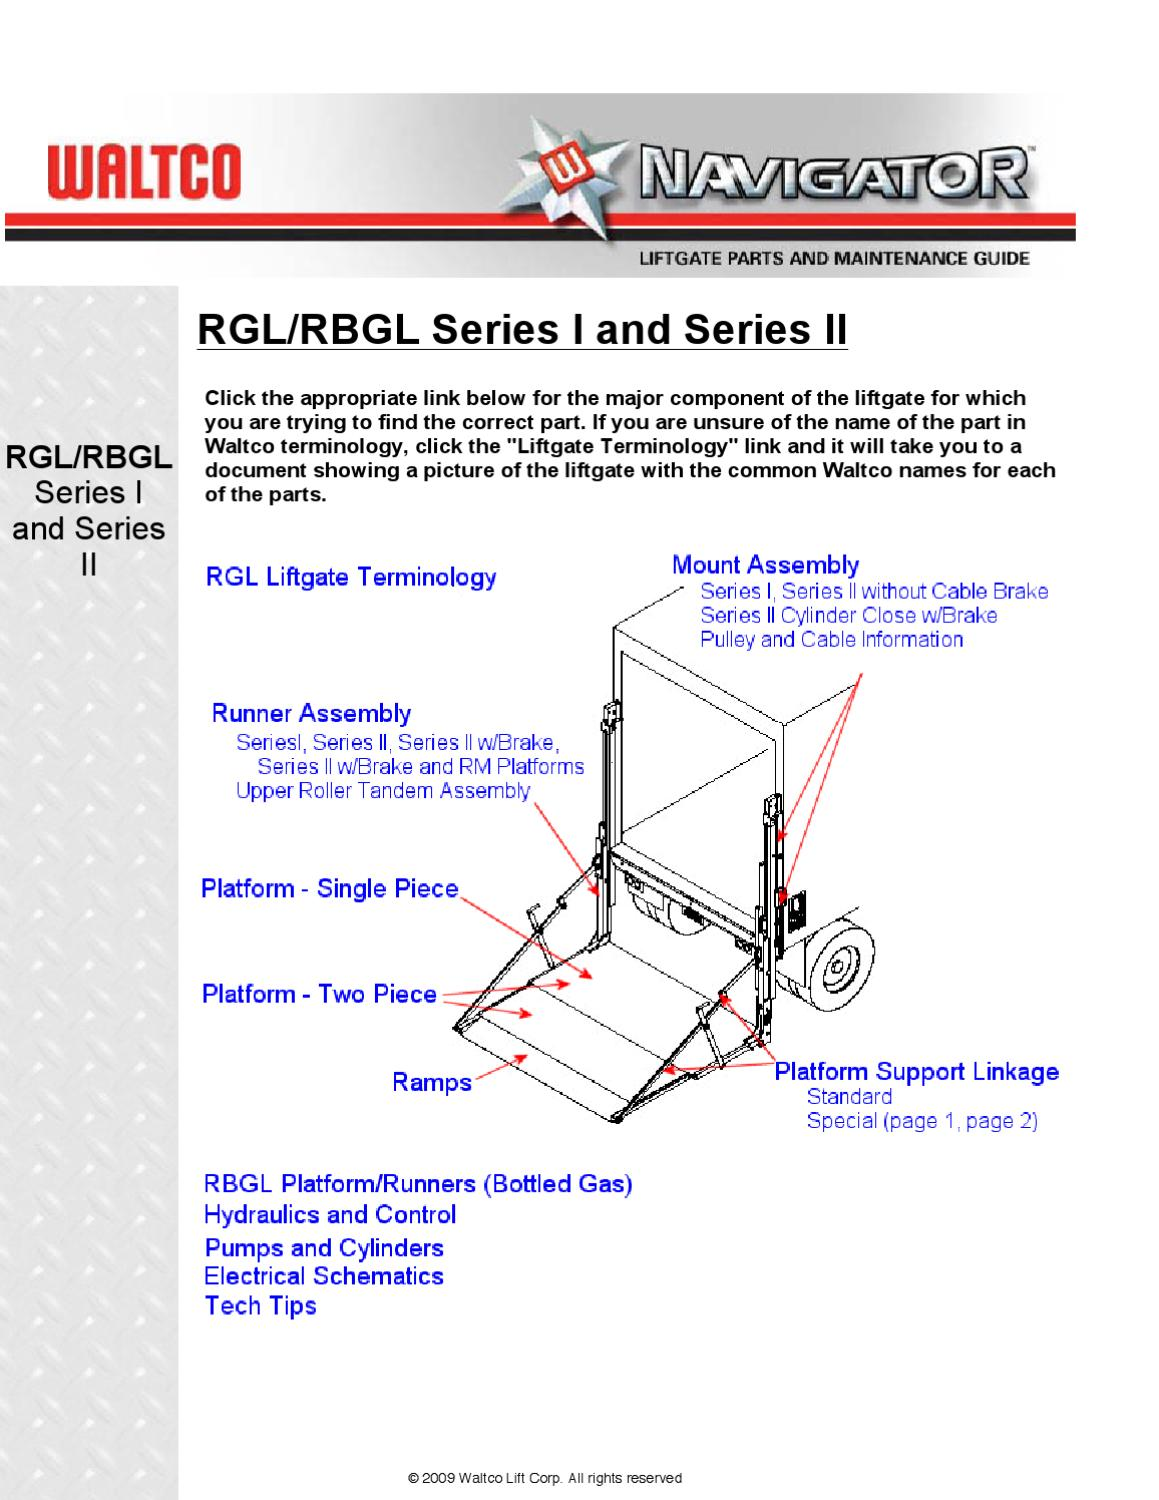 page_1 Waltco Liftgate Wiring Diagram on thieman liftgate wiring diagram, 2008 toyota sienna parts diagram, maxon liftgate wiring diagram, waltco lift gate solenoid diagram, interlift liftgate wiring diagram, leyman liftgate wiring diagram, tommy liftgate wiring diagram, kenworth air brake diagram, anthony liftgate wiring diagram, maxon liftgate parts diagram,